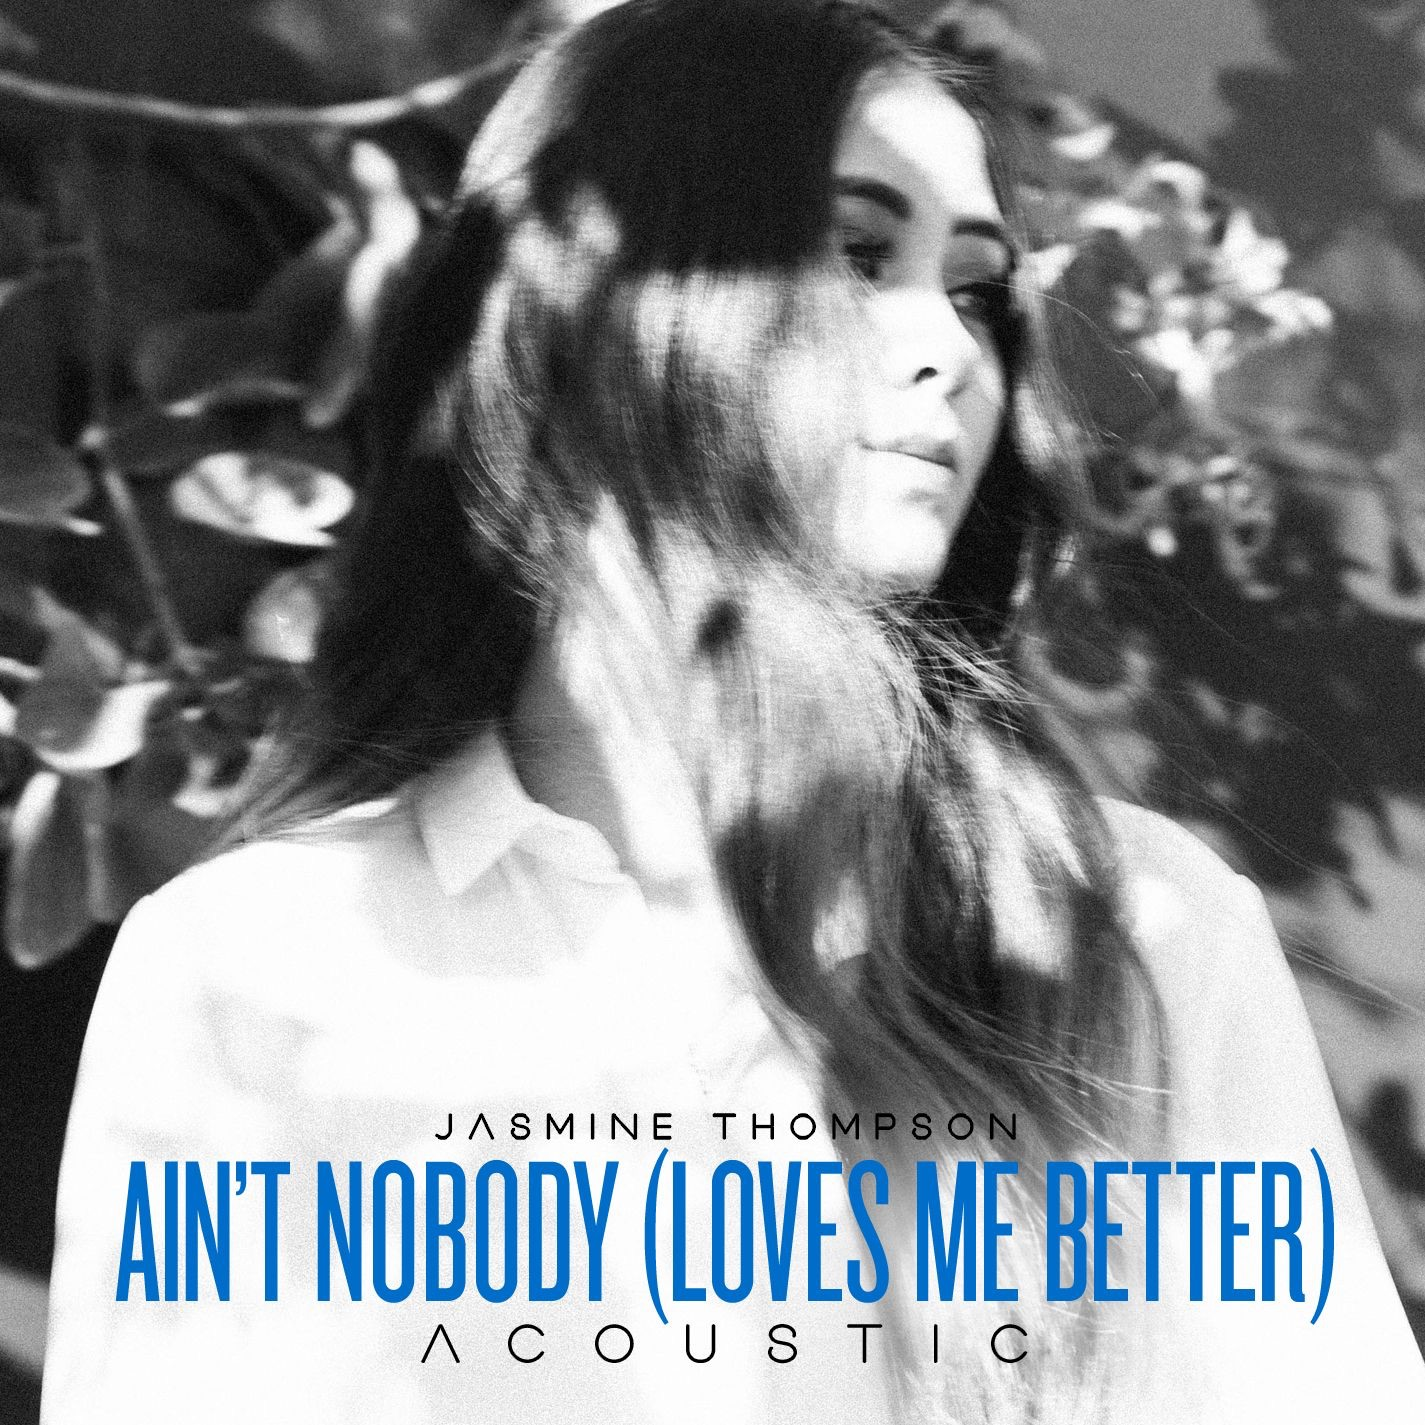 Download Song Better Now: Ain't Nobody (Loves Me Better) [Acoustic]